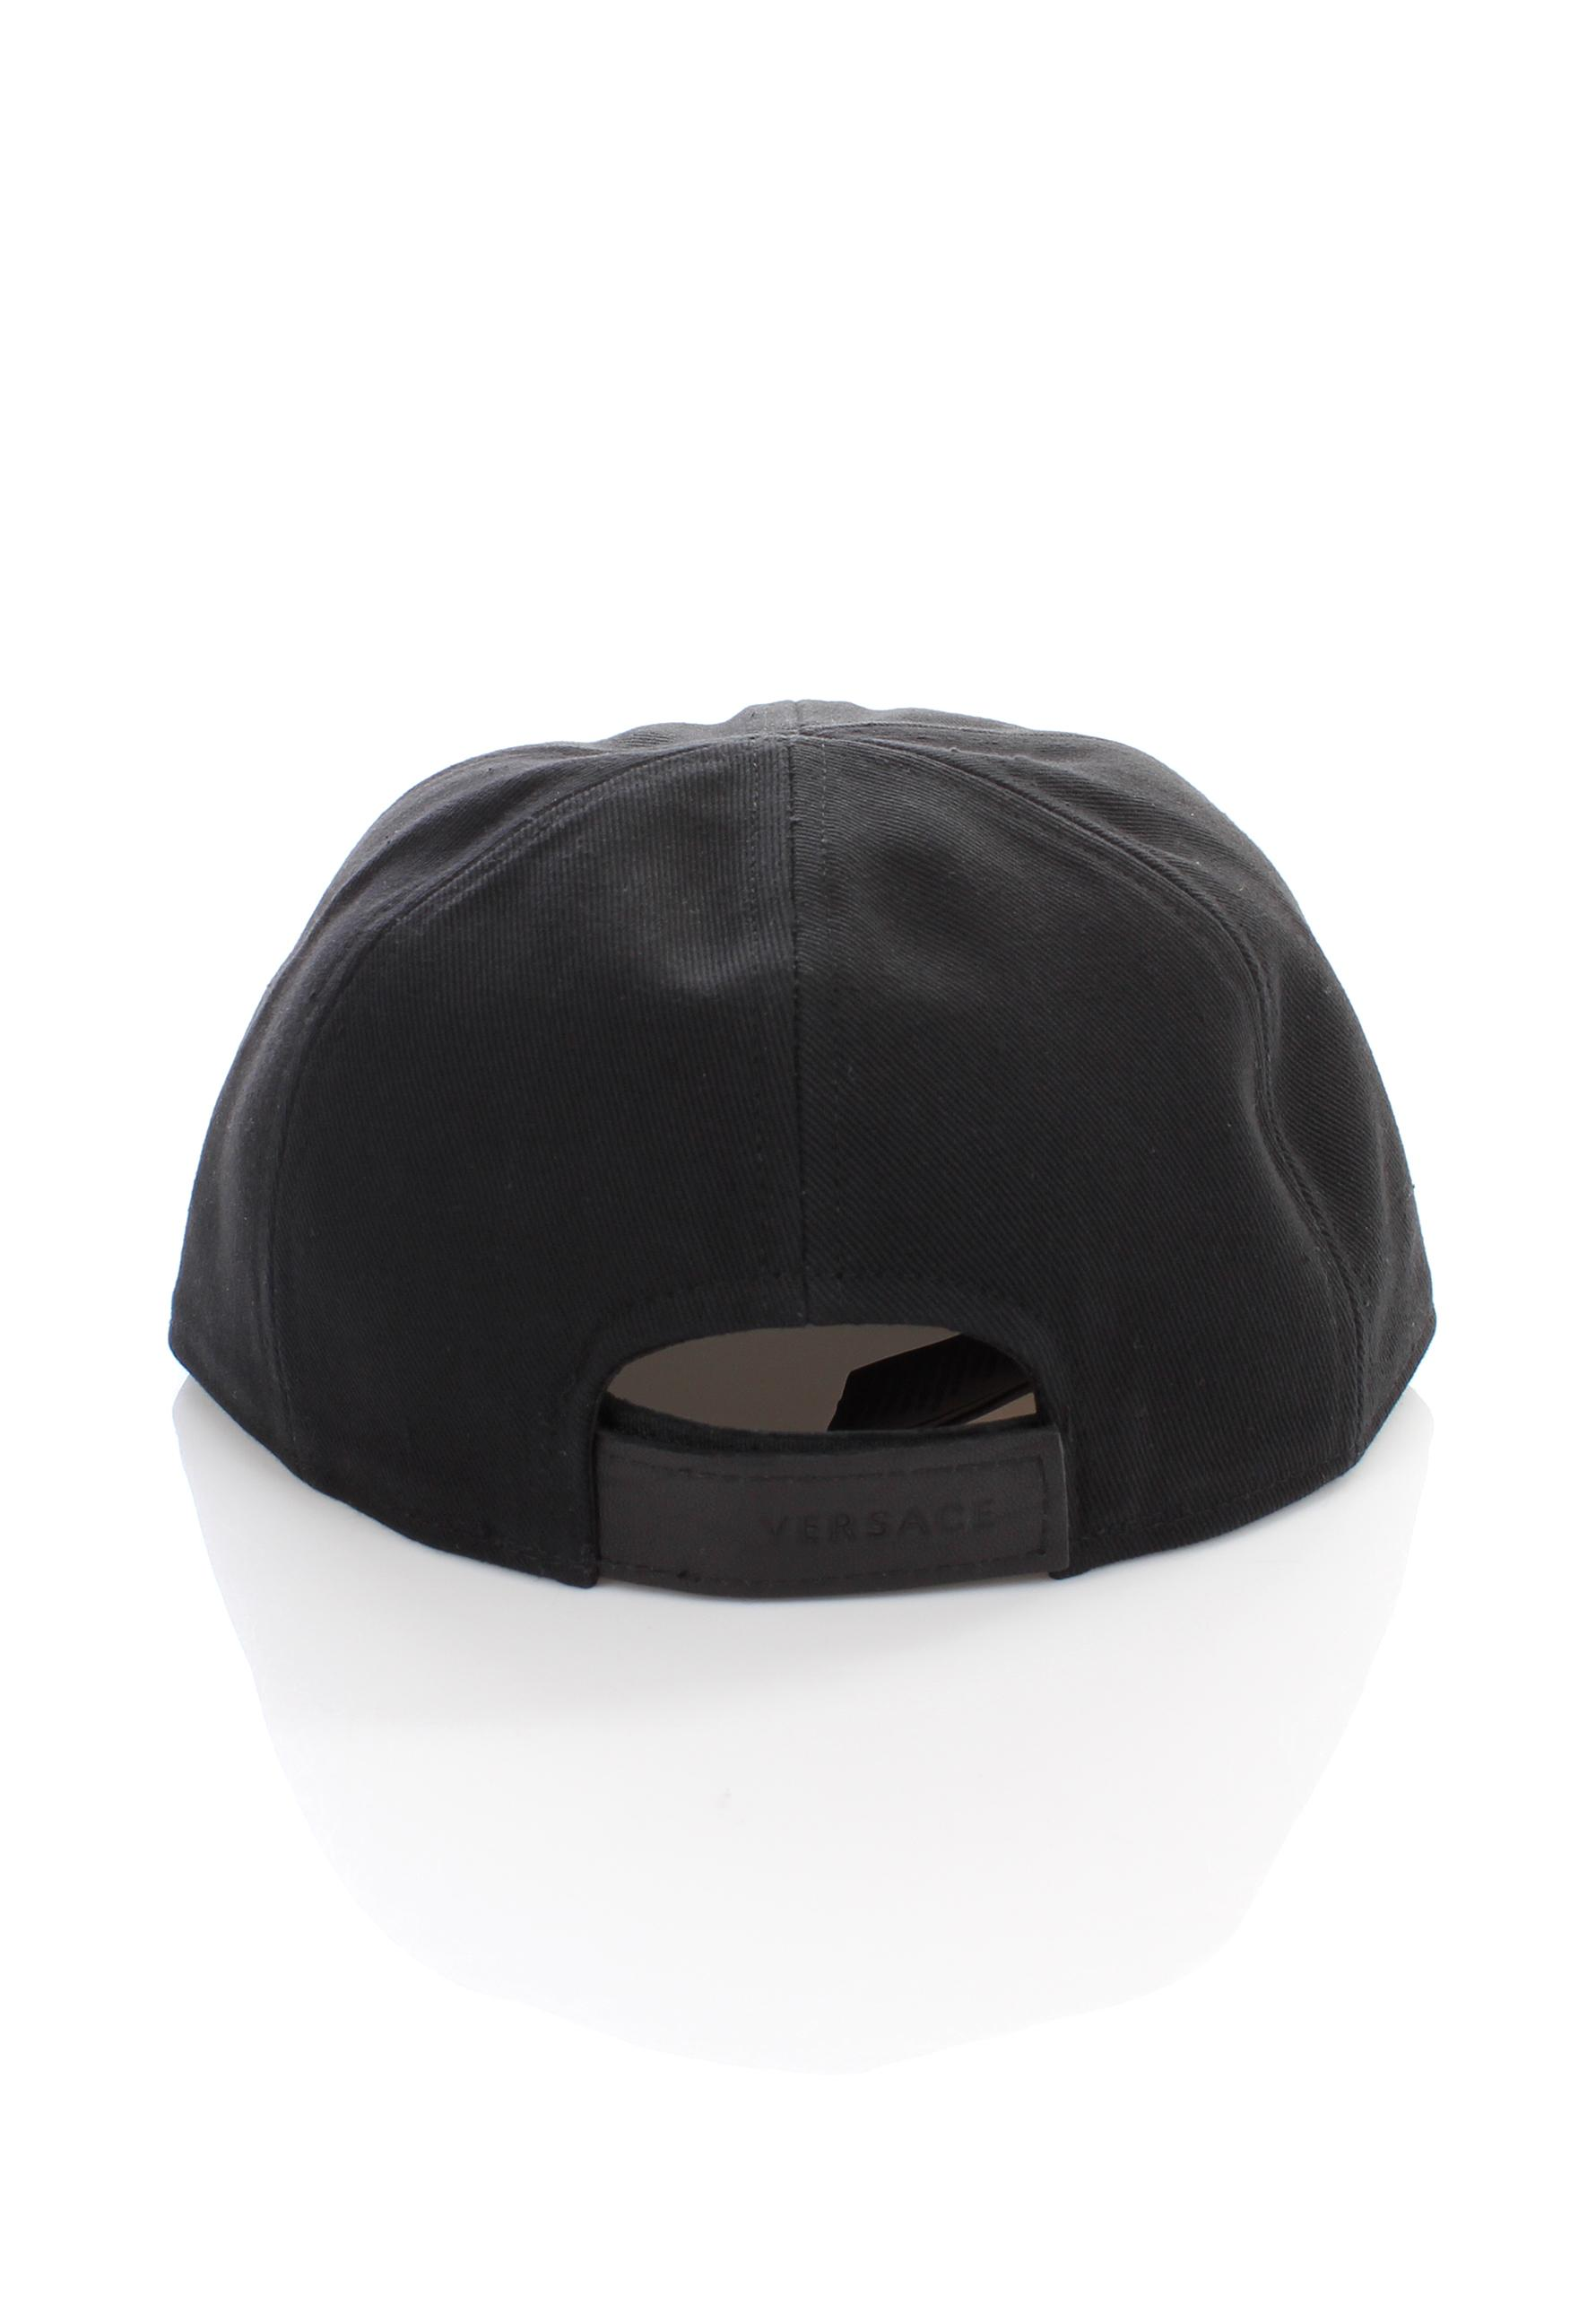 0368a77ca00 Versace - Black Medusa Logo Half Leather Cap Nero for Men - Lyst. View  fullscreen